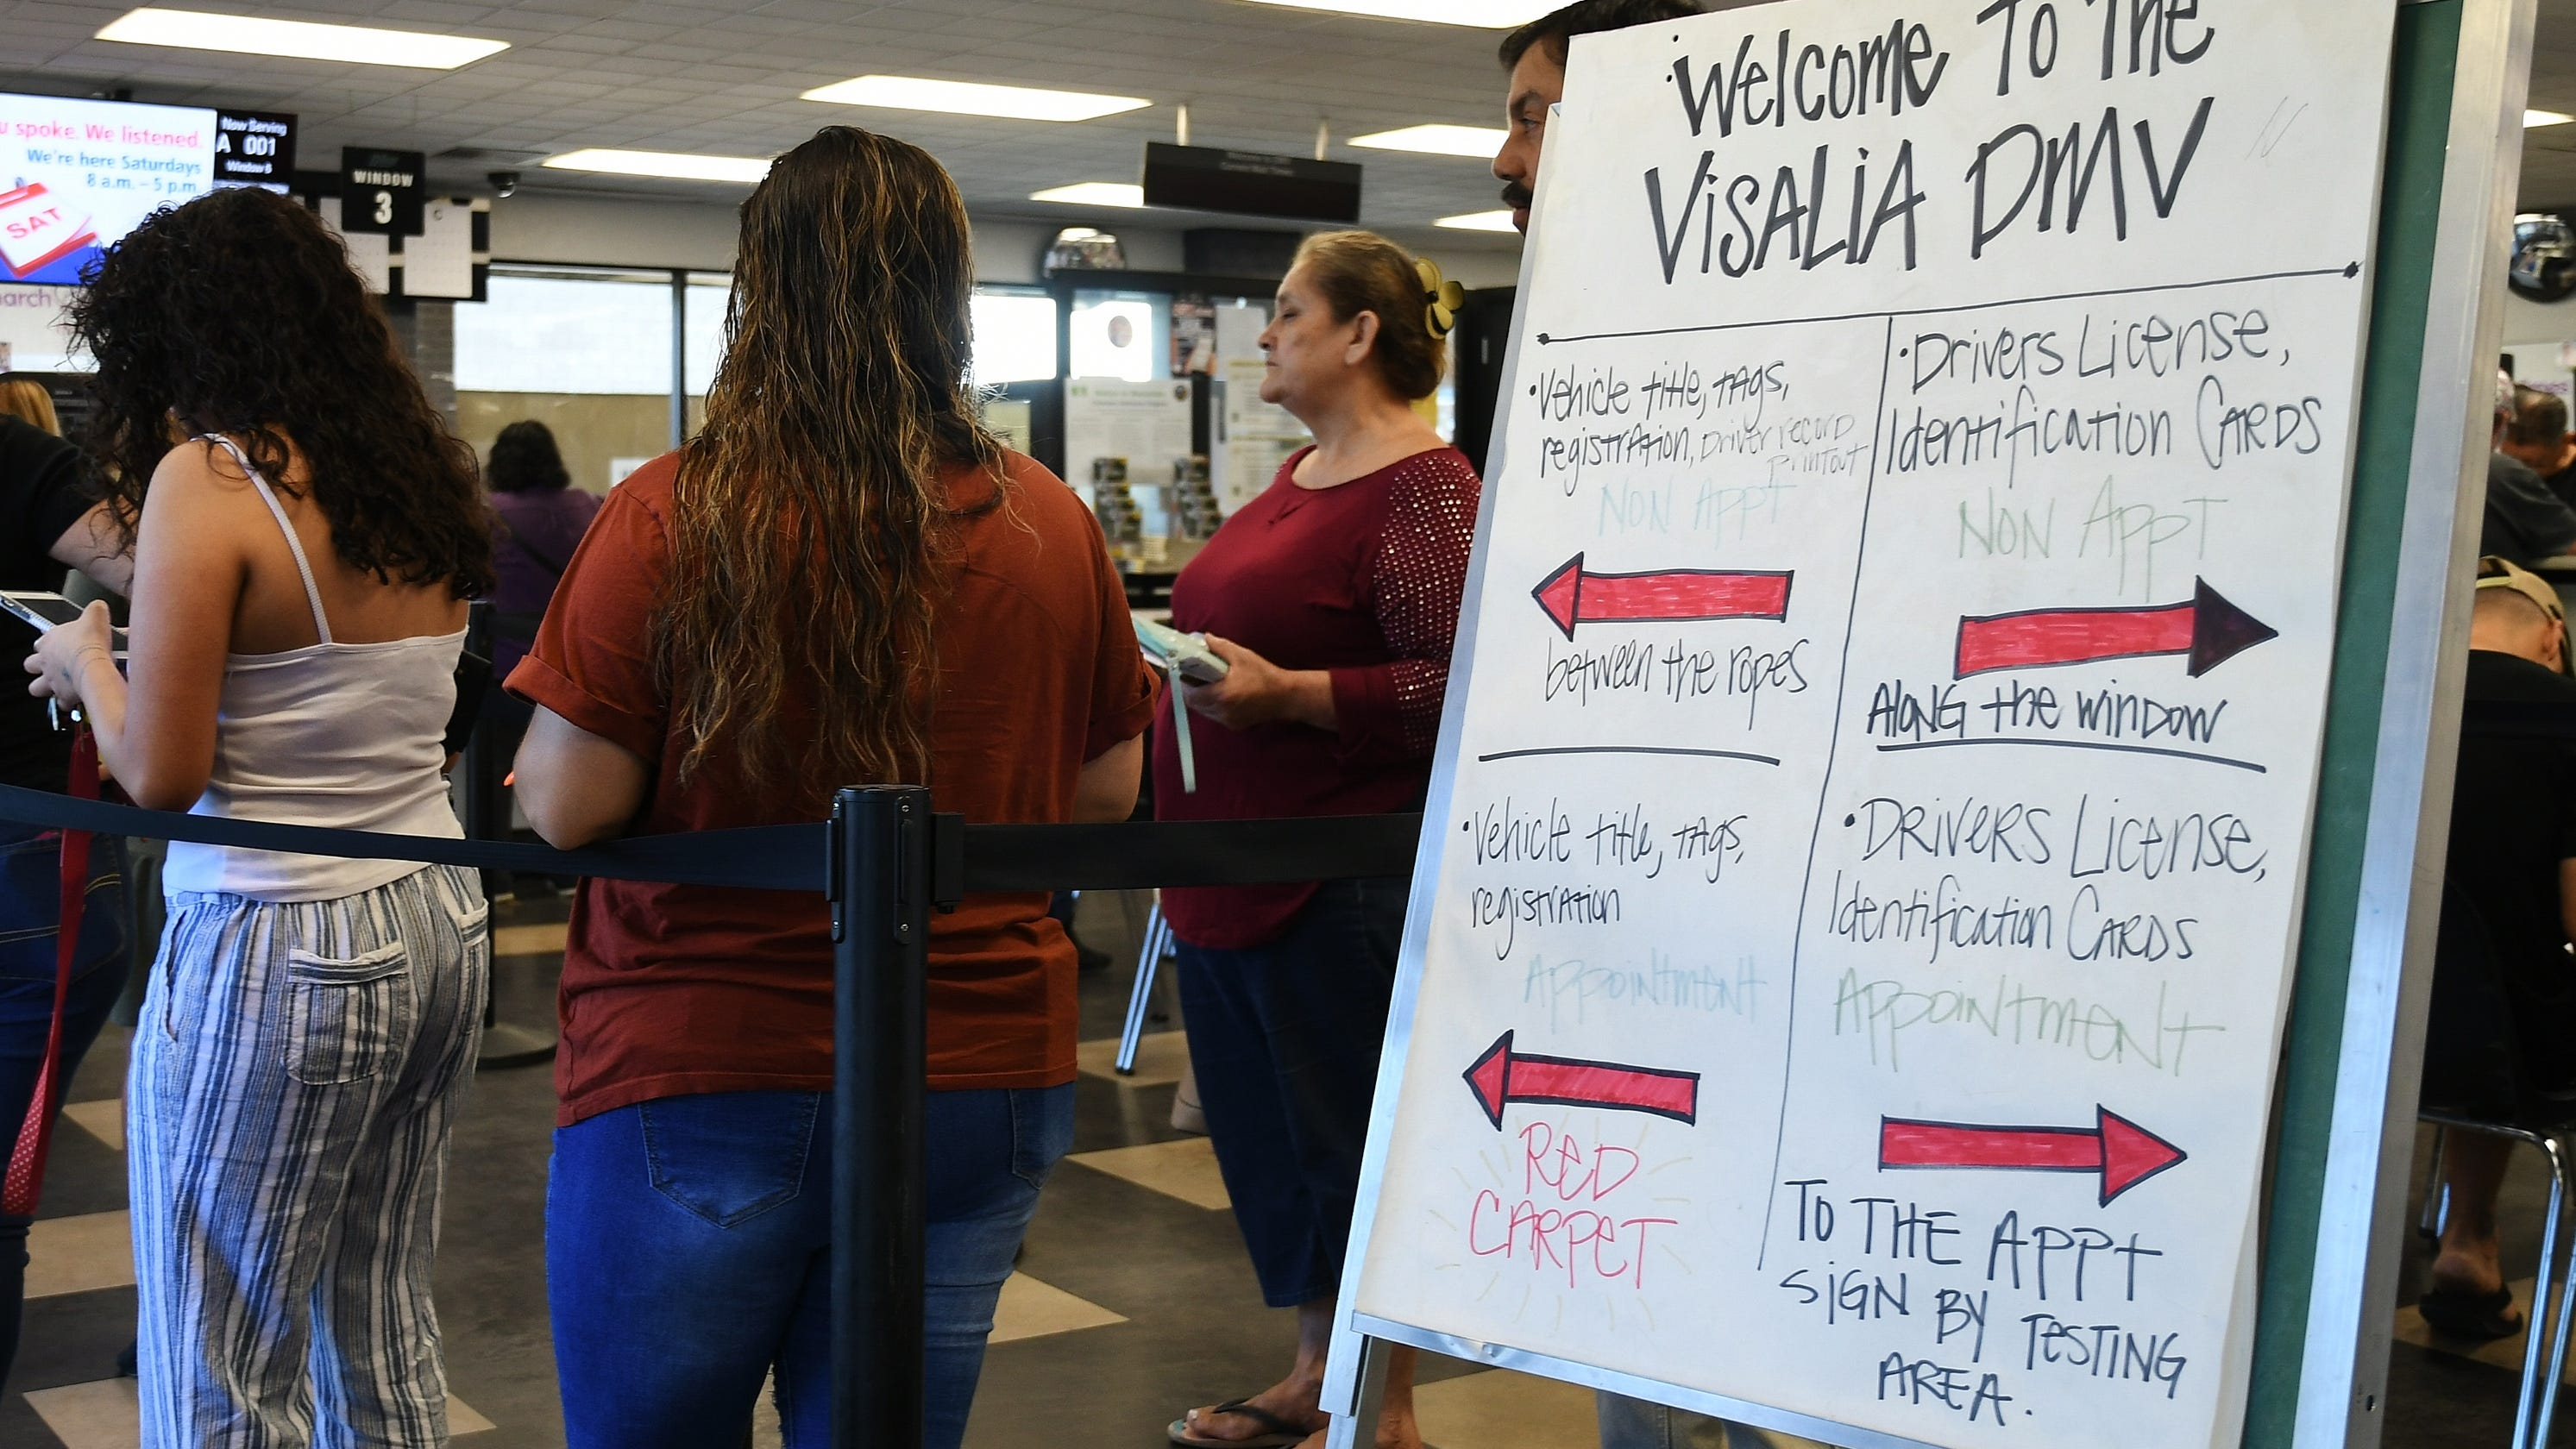 Visalia DMV Office Reopens After Mold Found